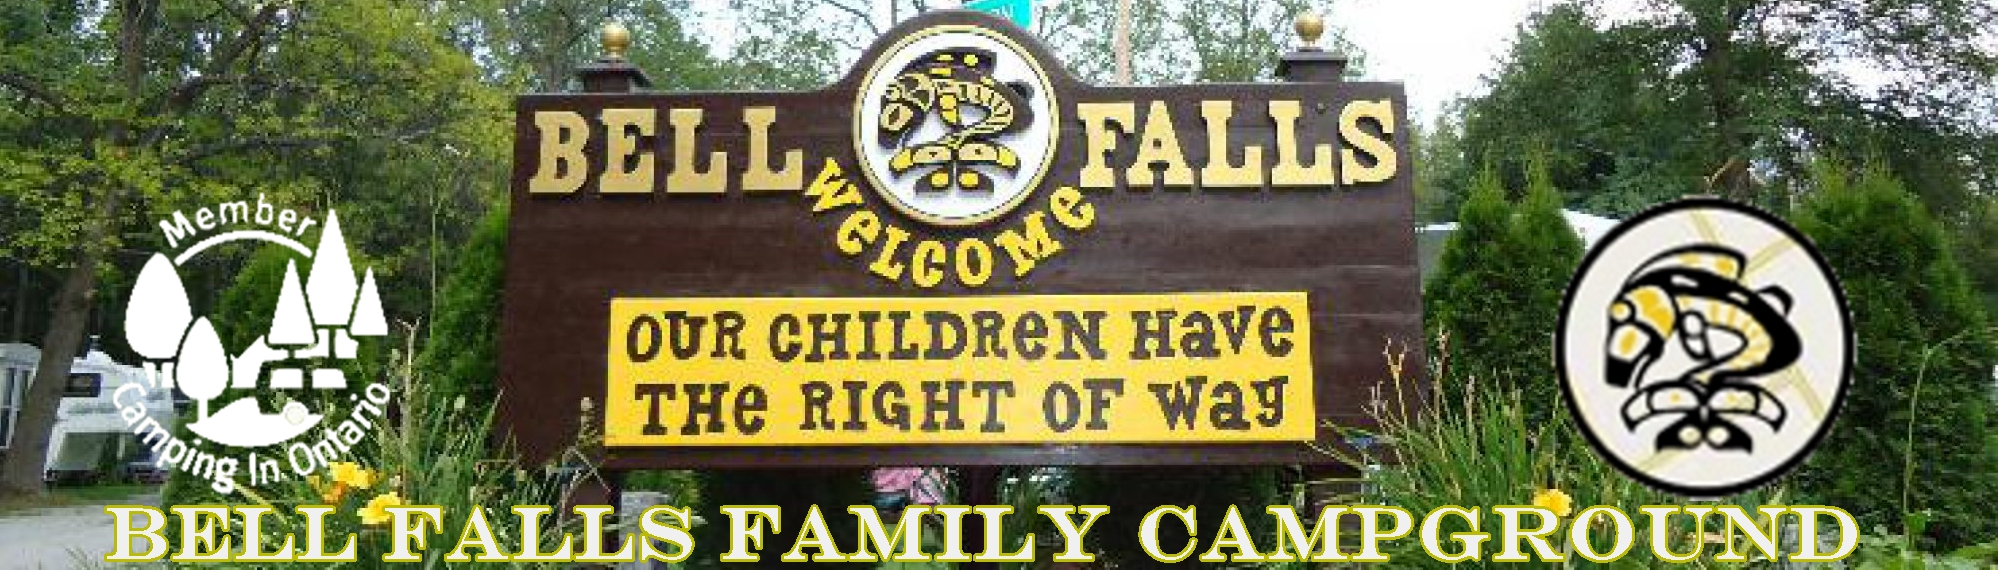 Bell Falls Family Campground